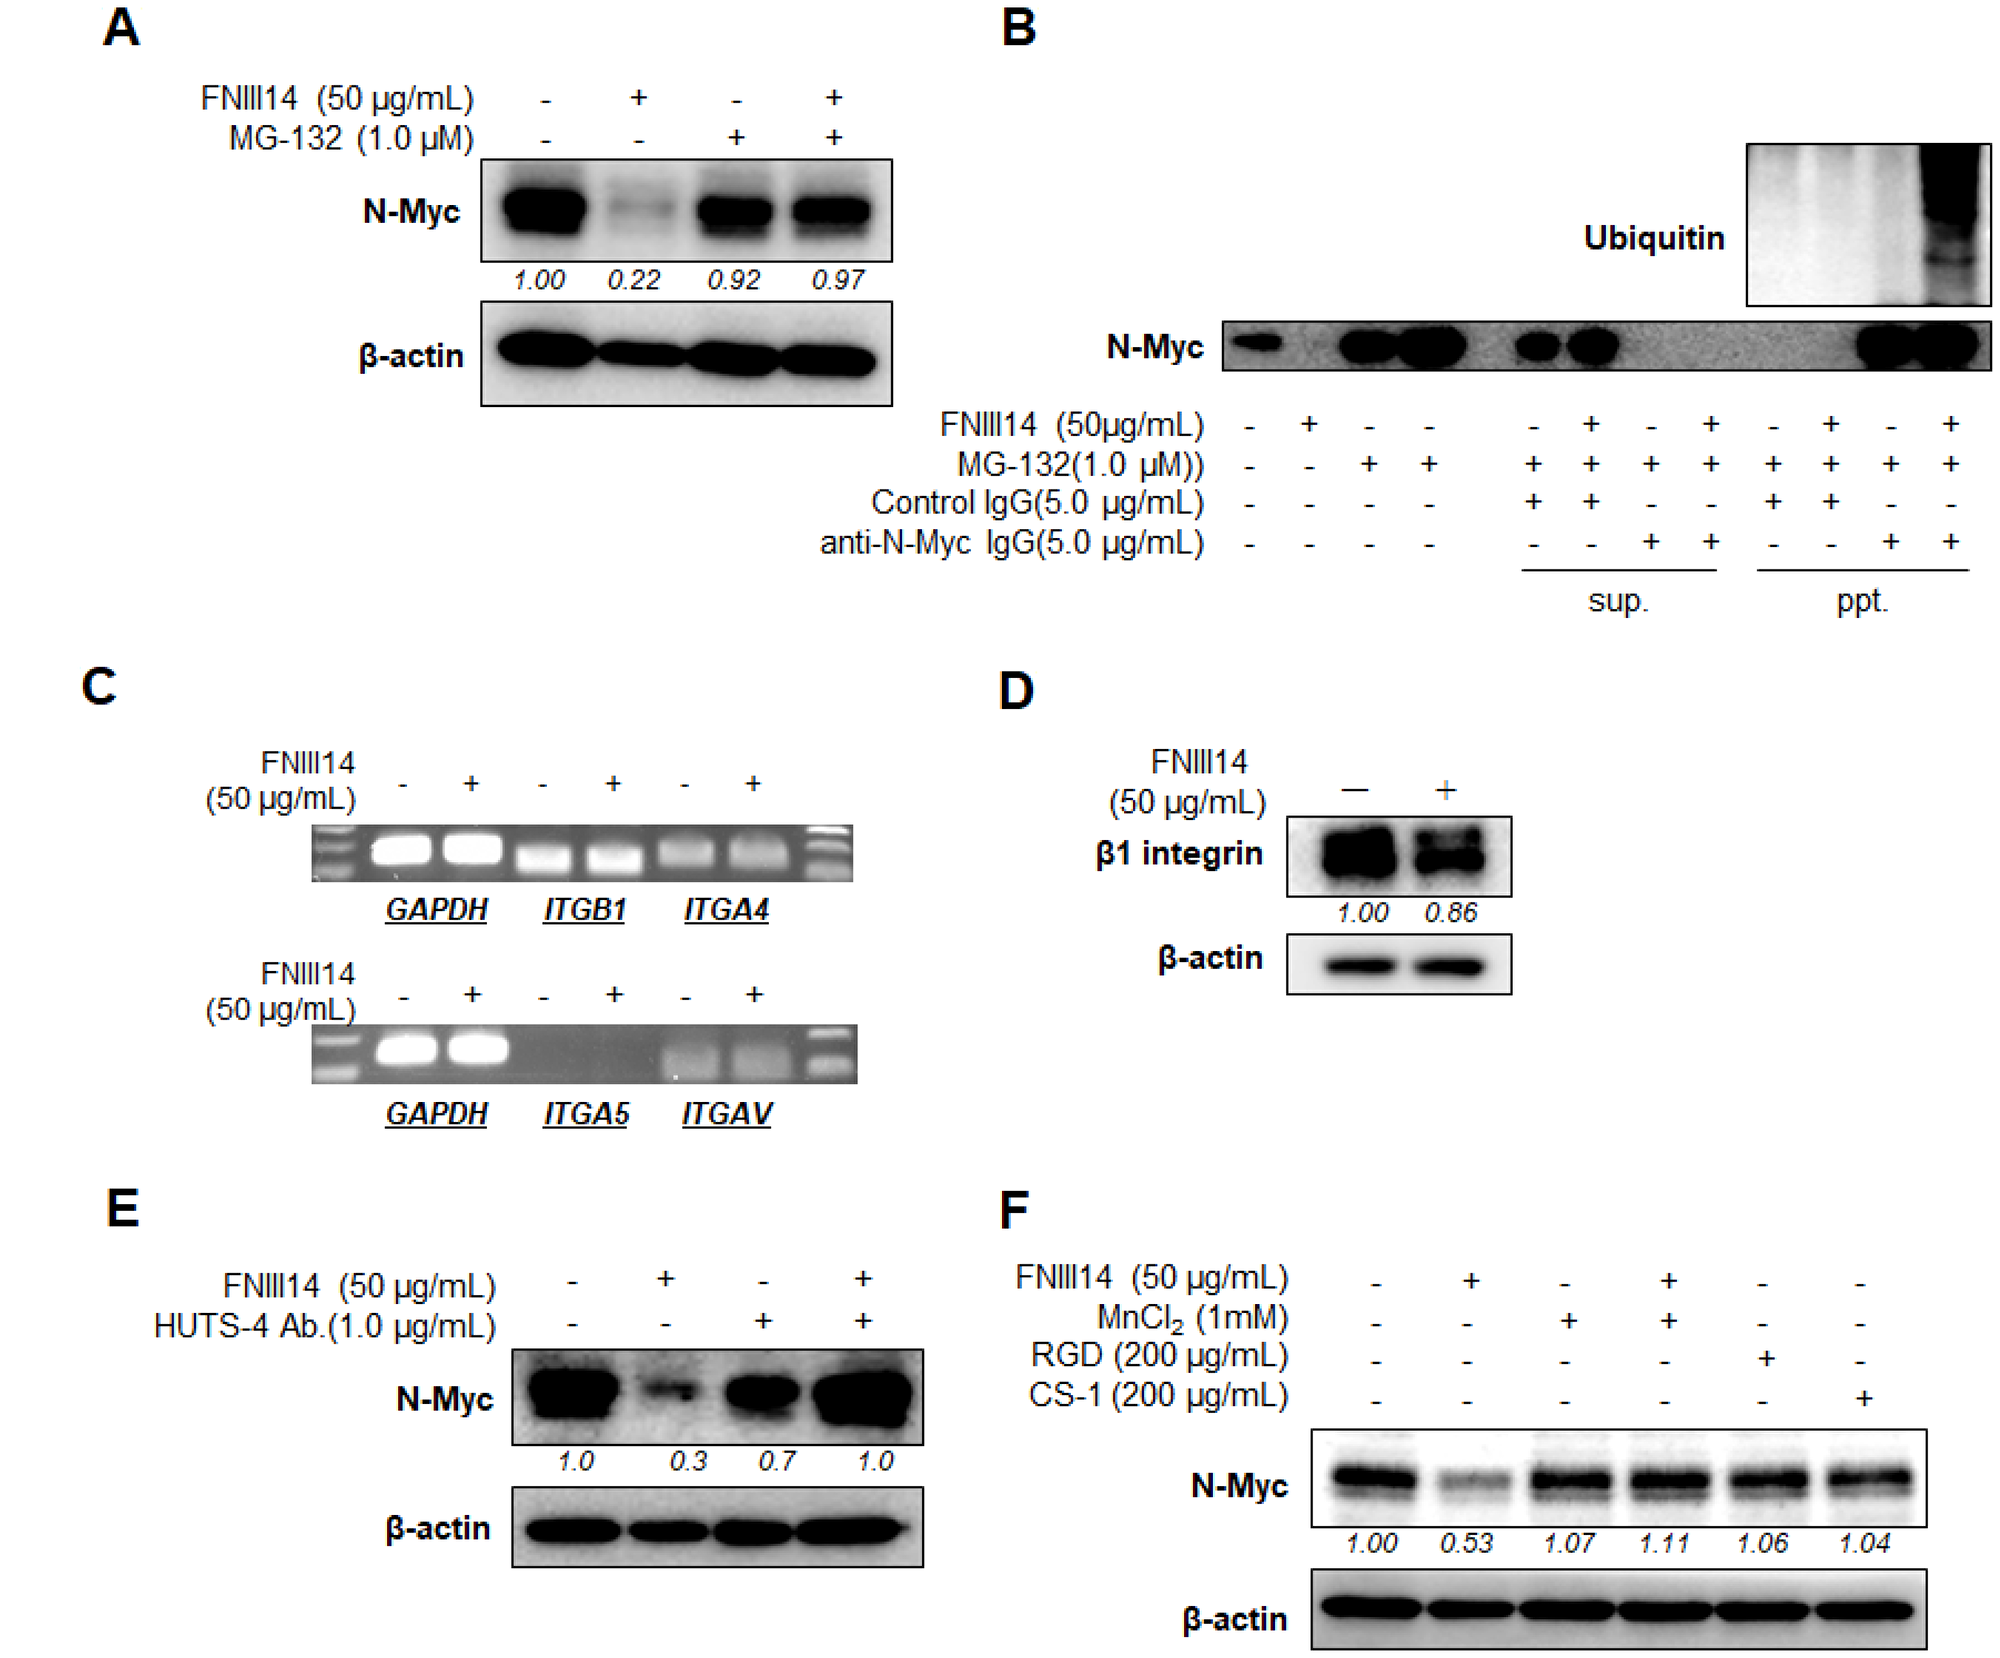 FNIII14 induces proteasomal degradation of N-Myc protein through inactivation of β1-integrins.